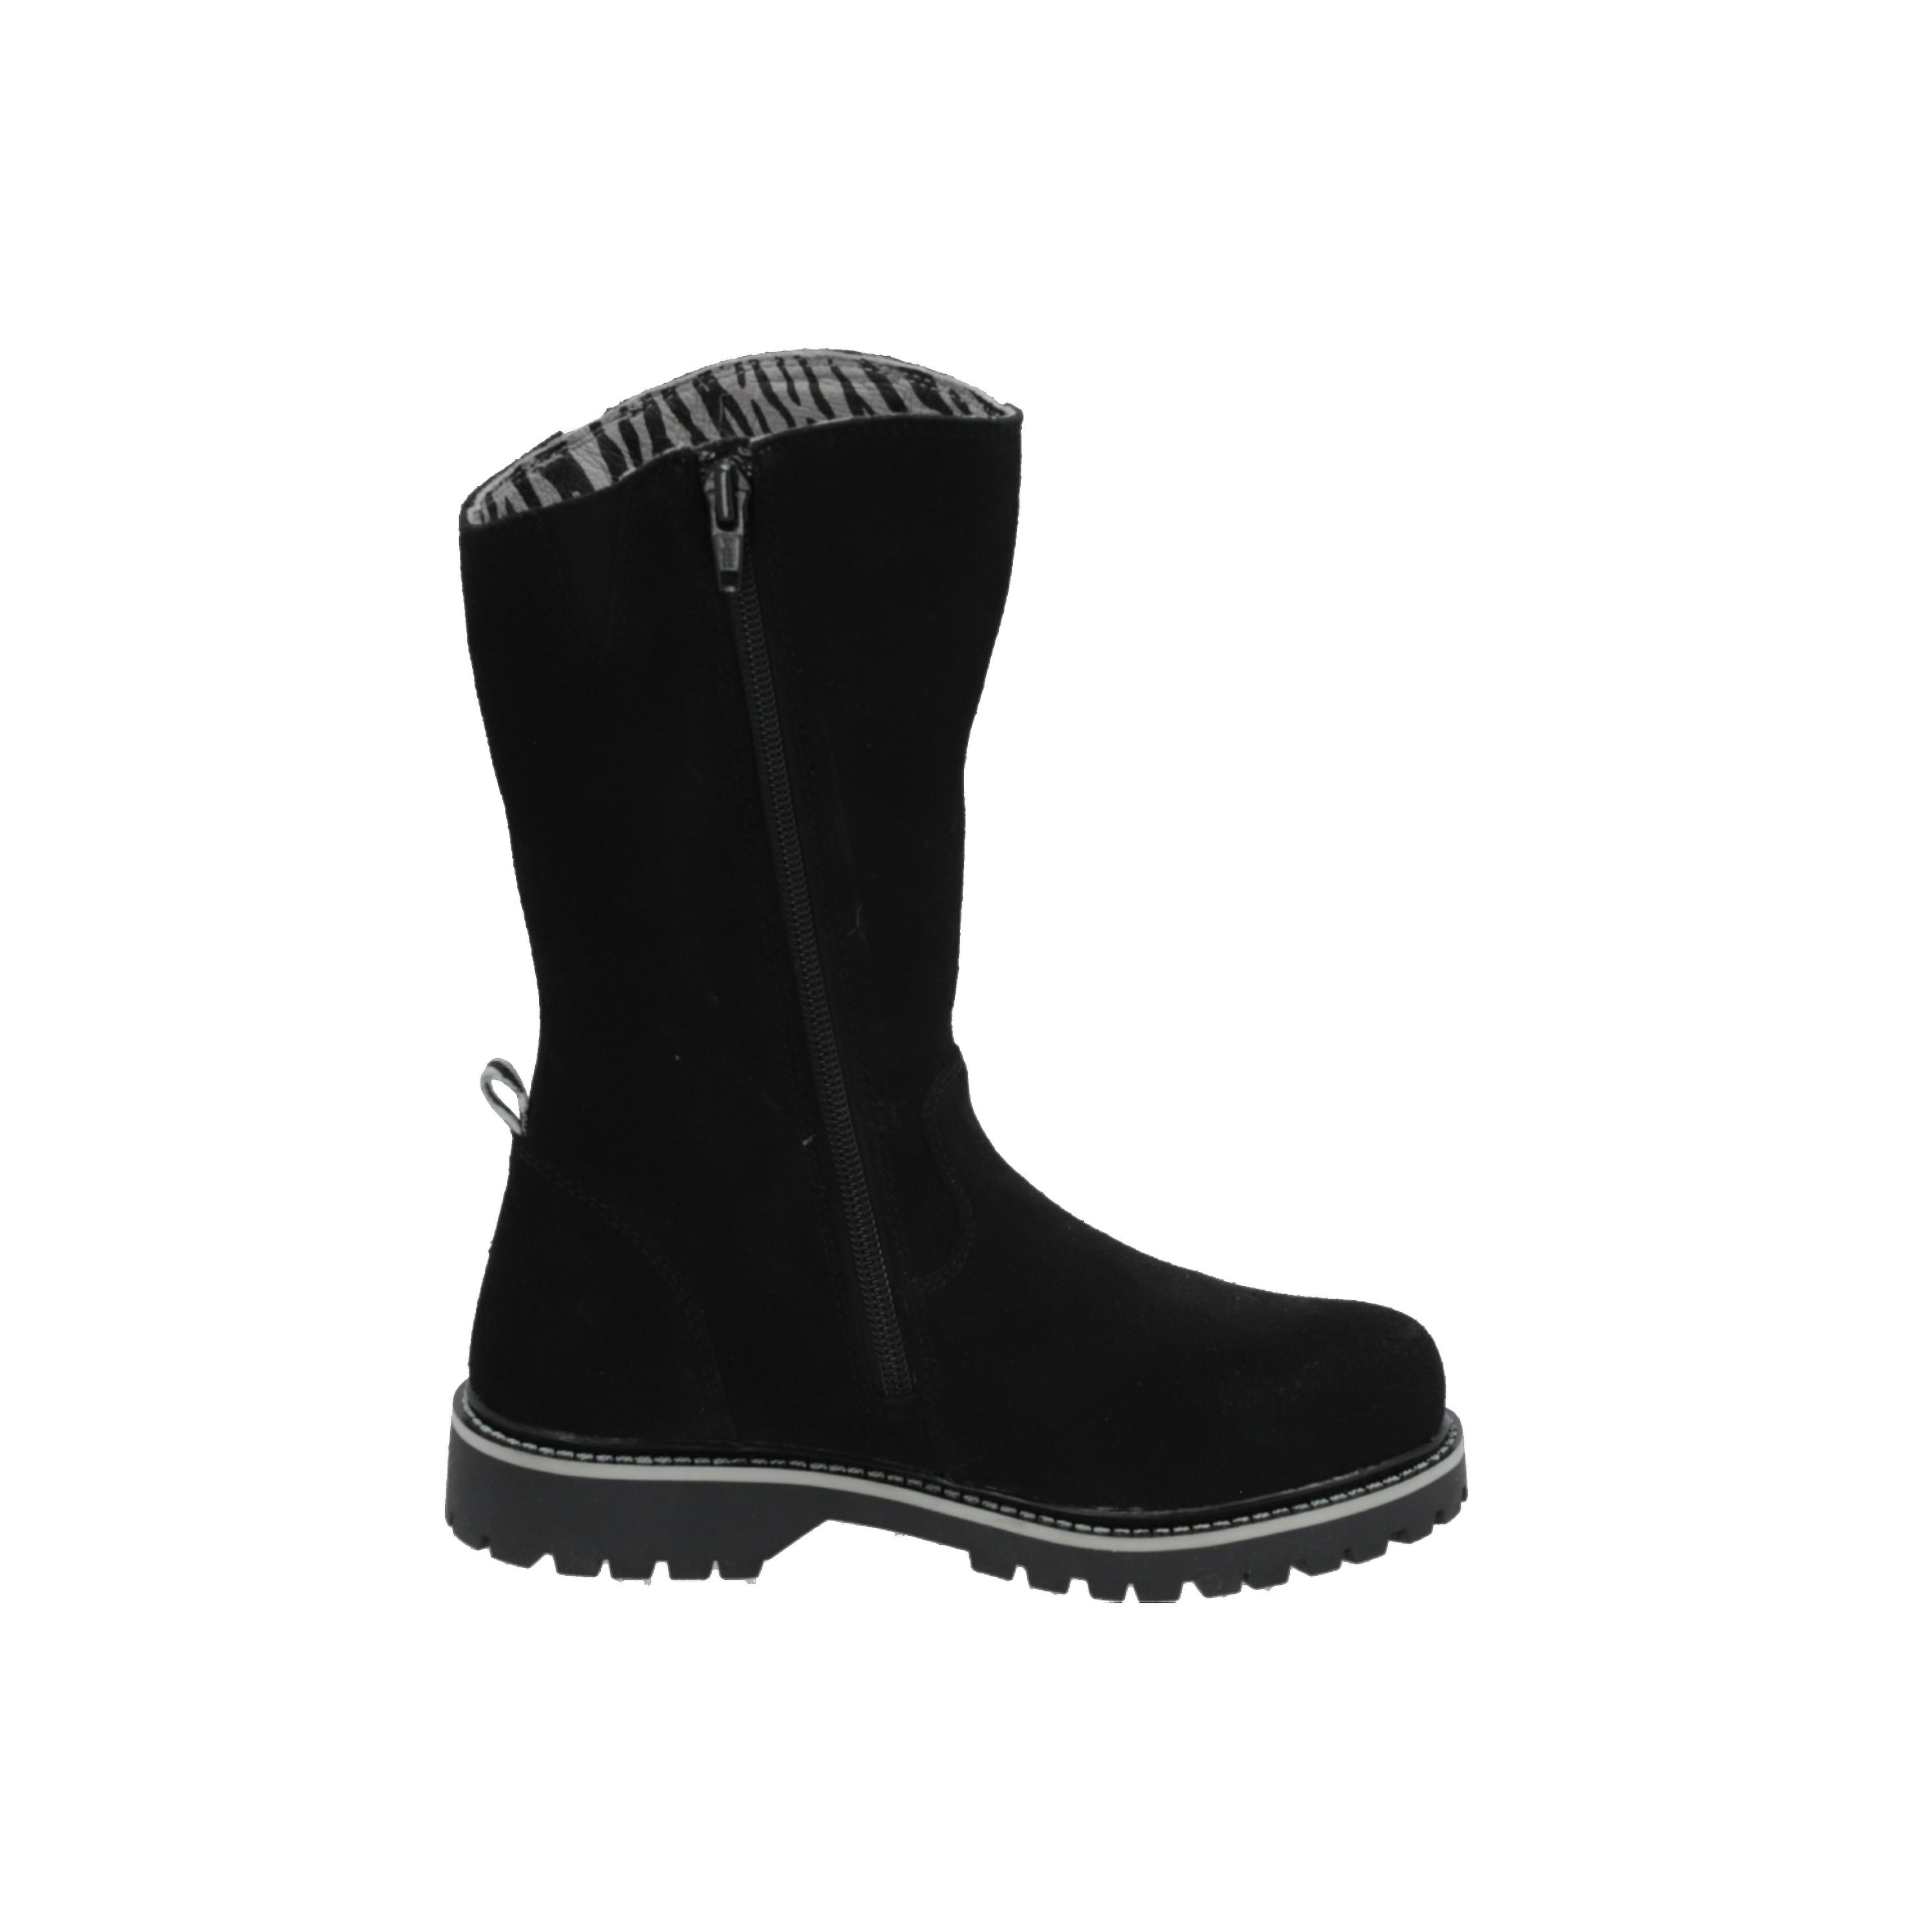 Zebra Schoenen Ayla Kids Girls Boots Black Lace-Up Boots Winter jje9lo